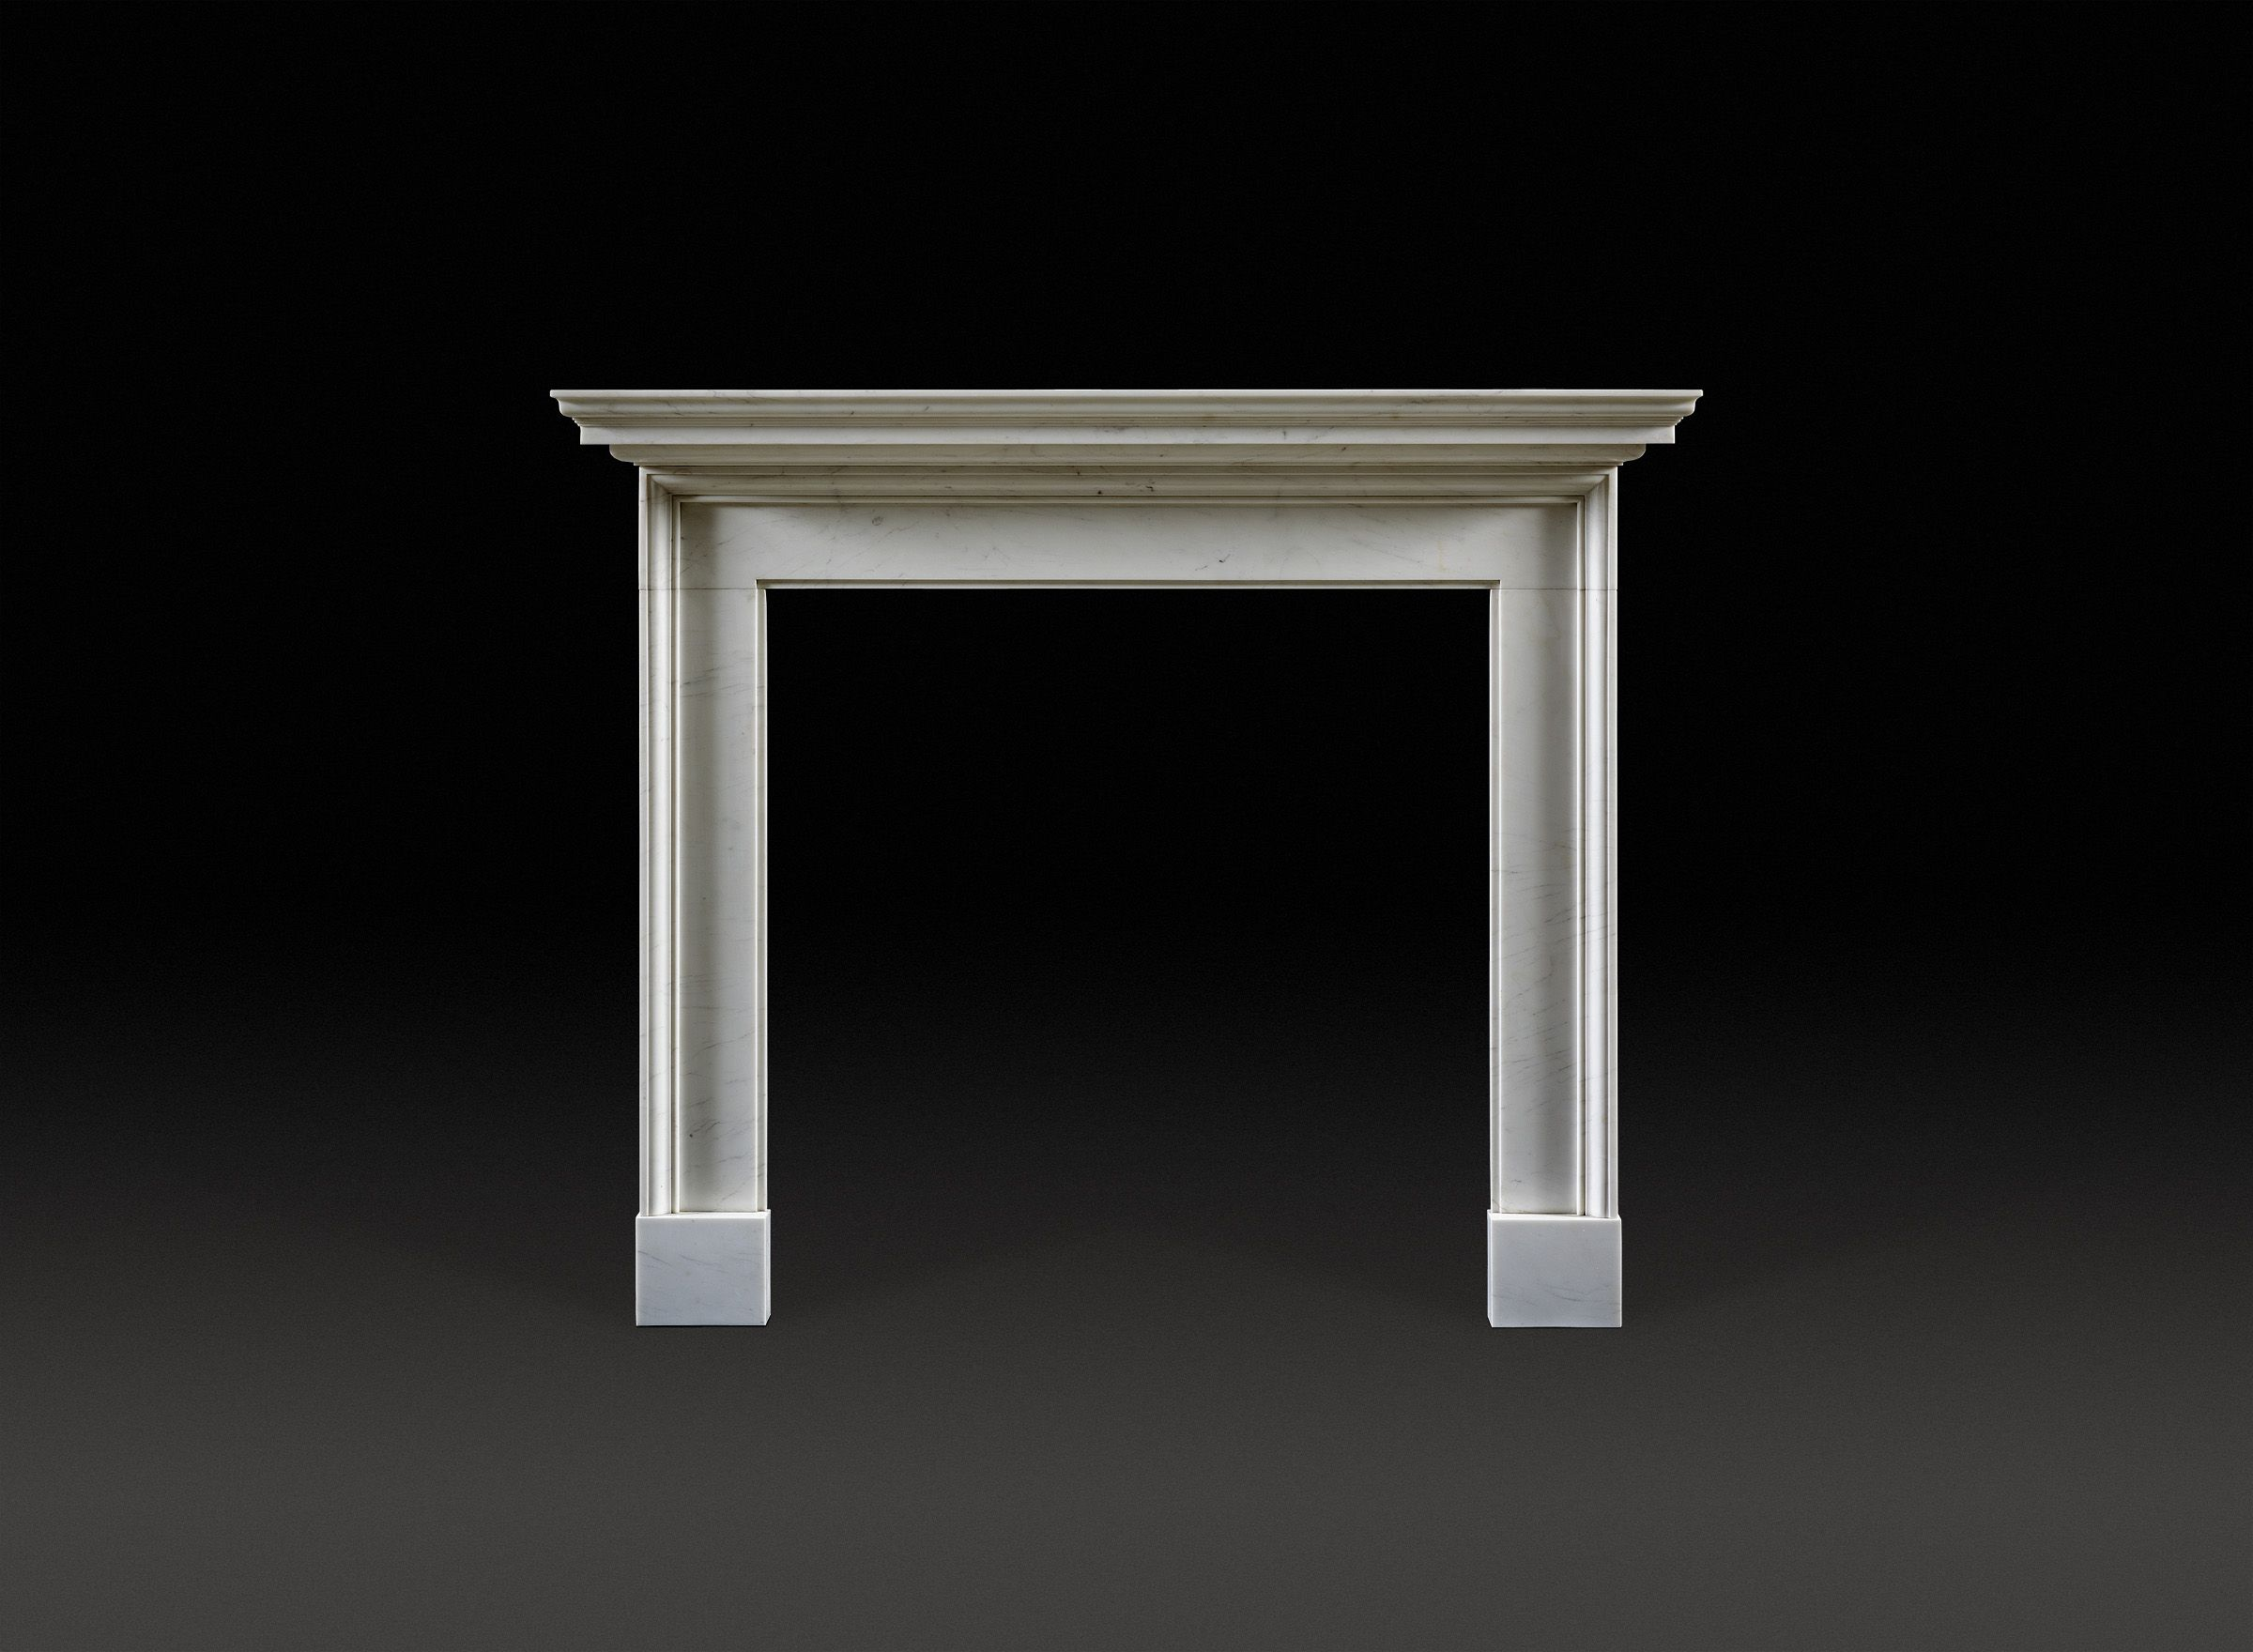 a simple but well drawn and proportionately designed fireplace